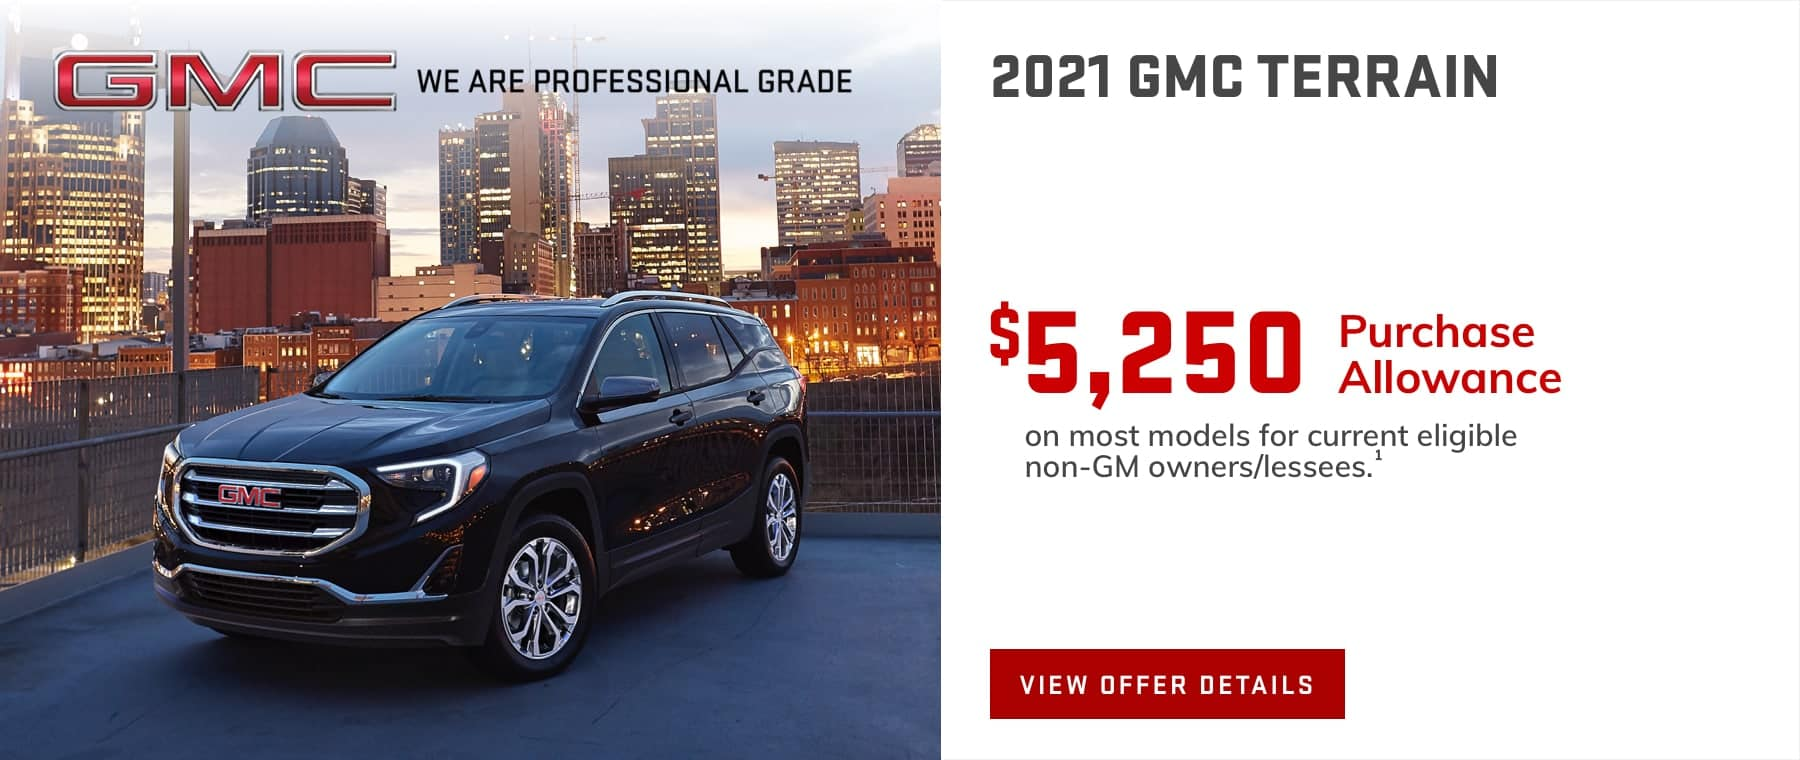 $5,250 Purchase Allowance on most models for current eligible non-GM owners/lessees.